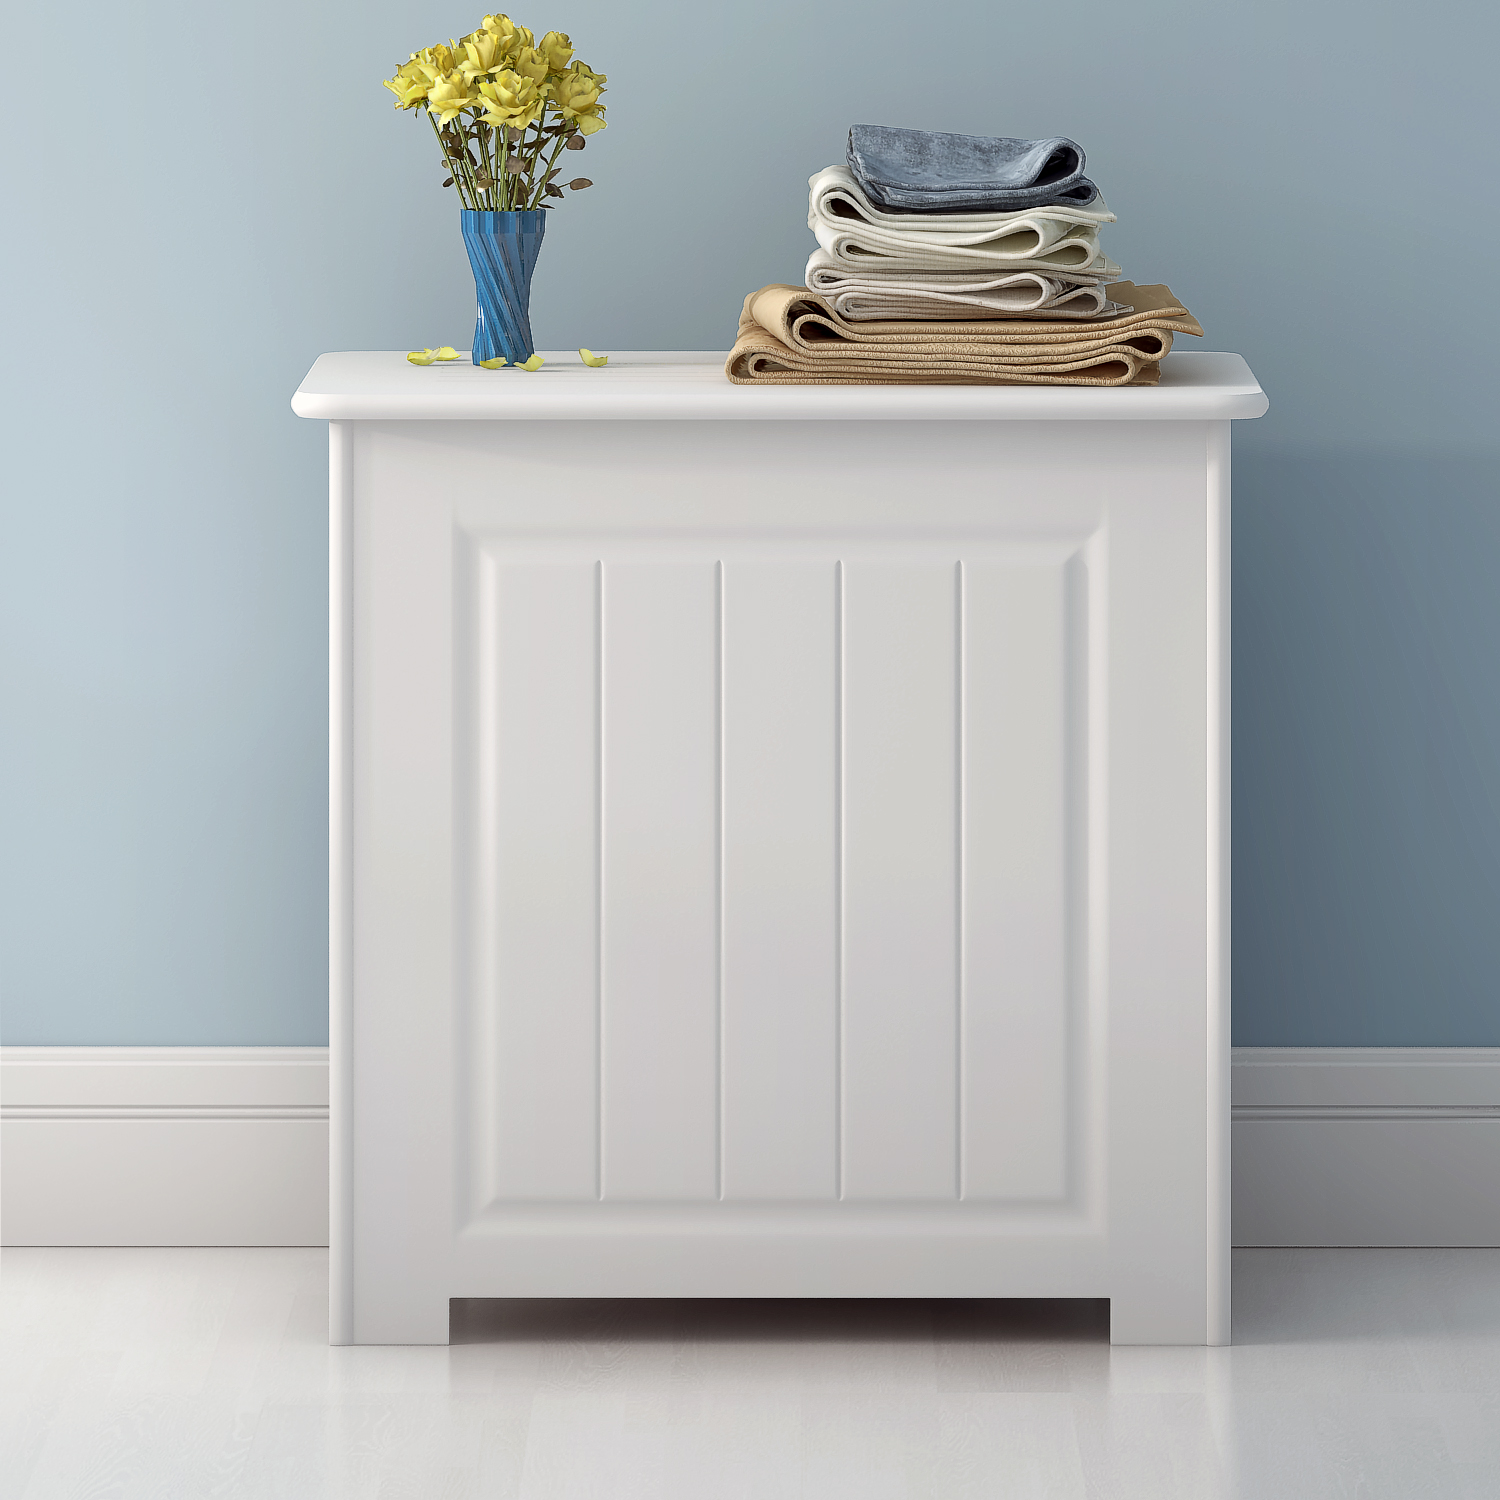 Details About White Wooden Bathroom Storage Laundry Box Cloth Toy Unit Trunk Hinged Lid Home